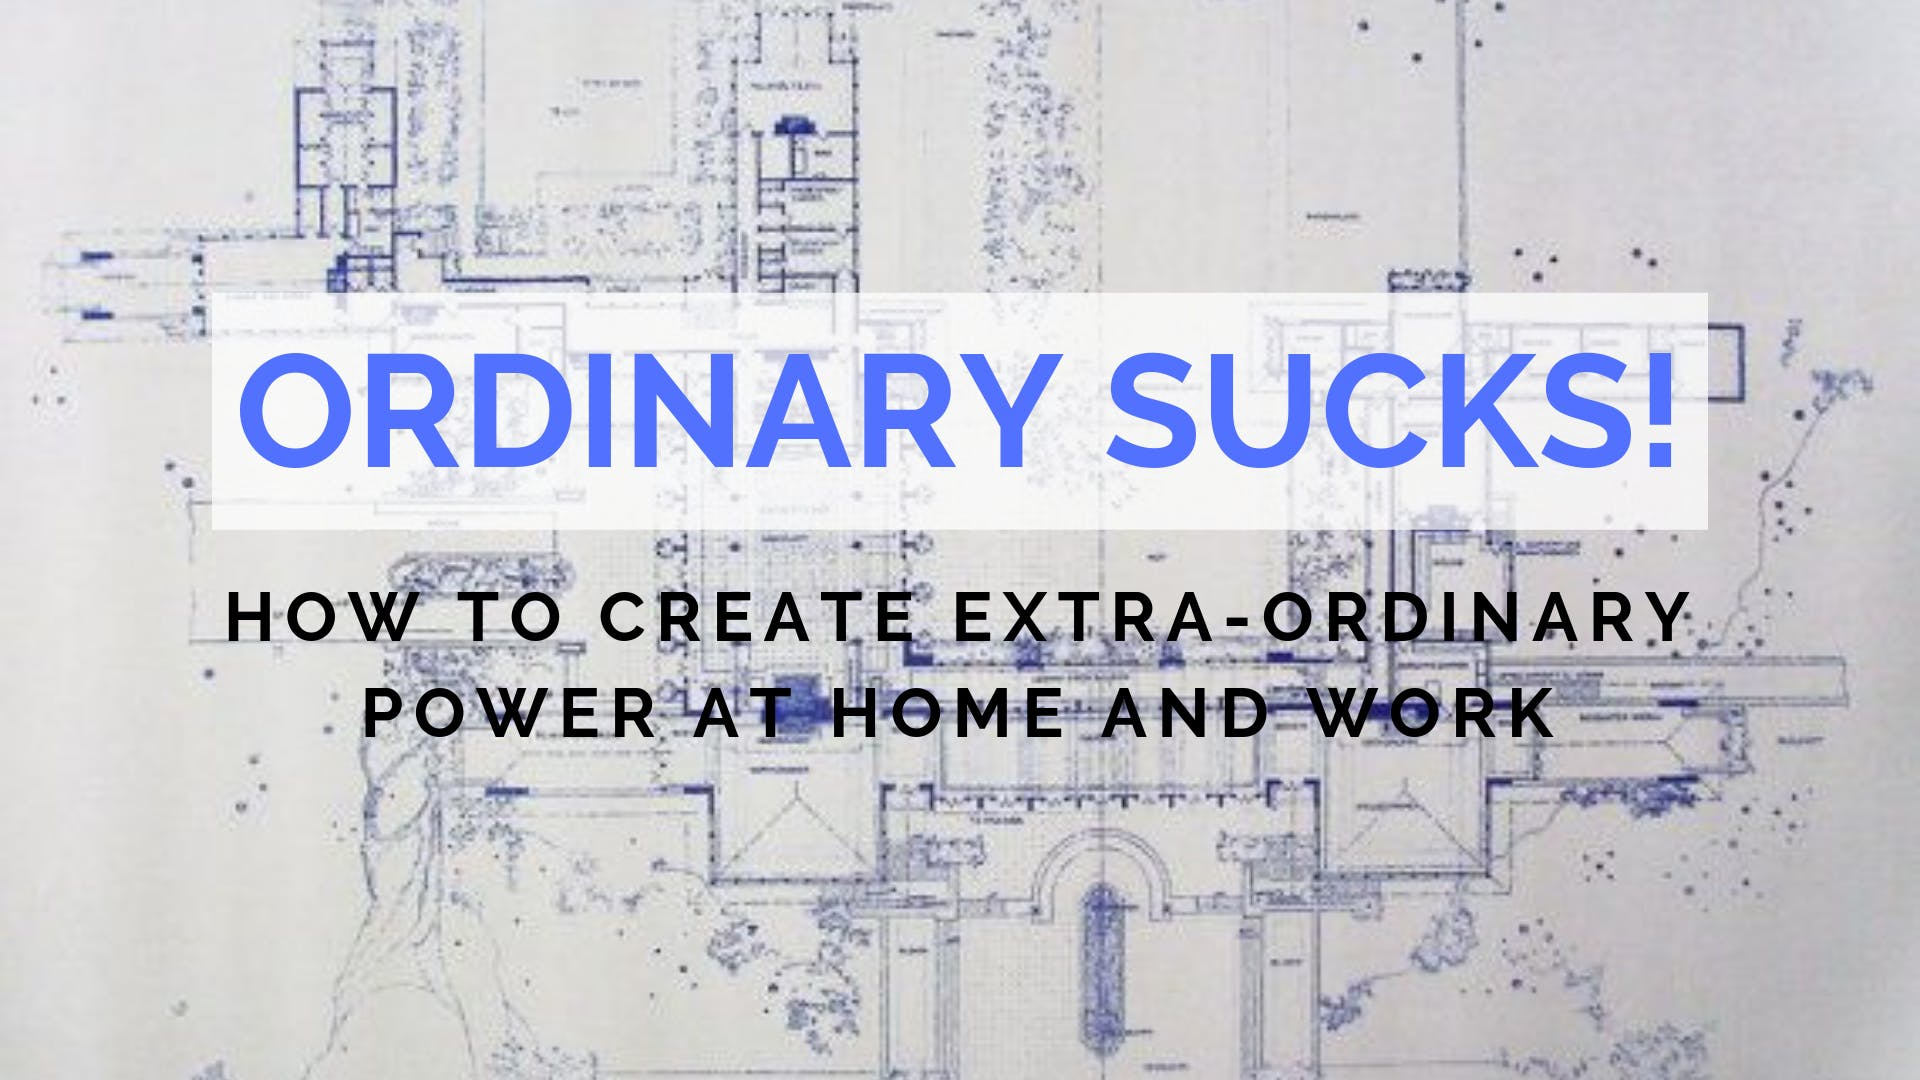 Ordinary Sucks! How to Create Extra-Ordinary Power at Home and Work